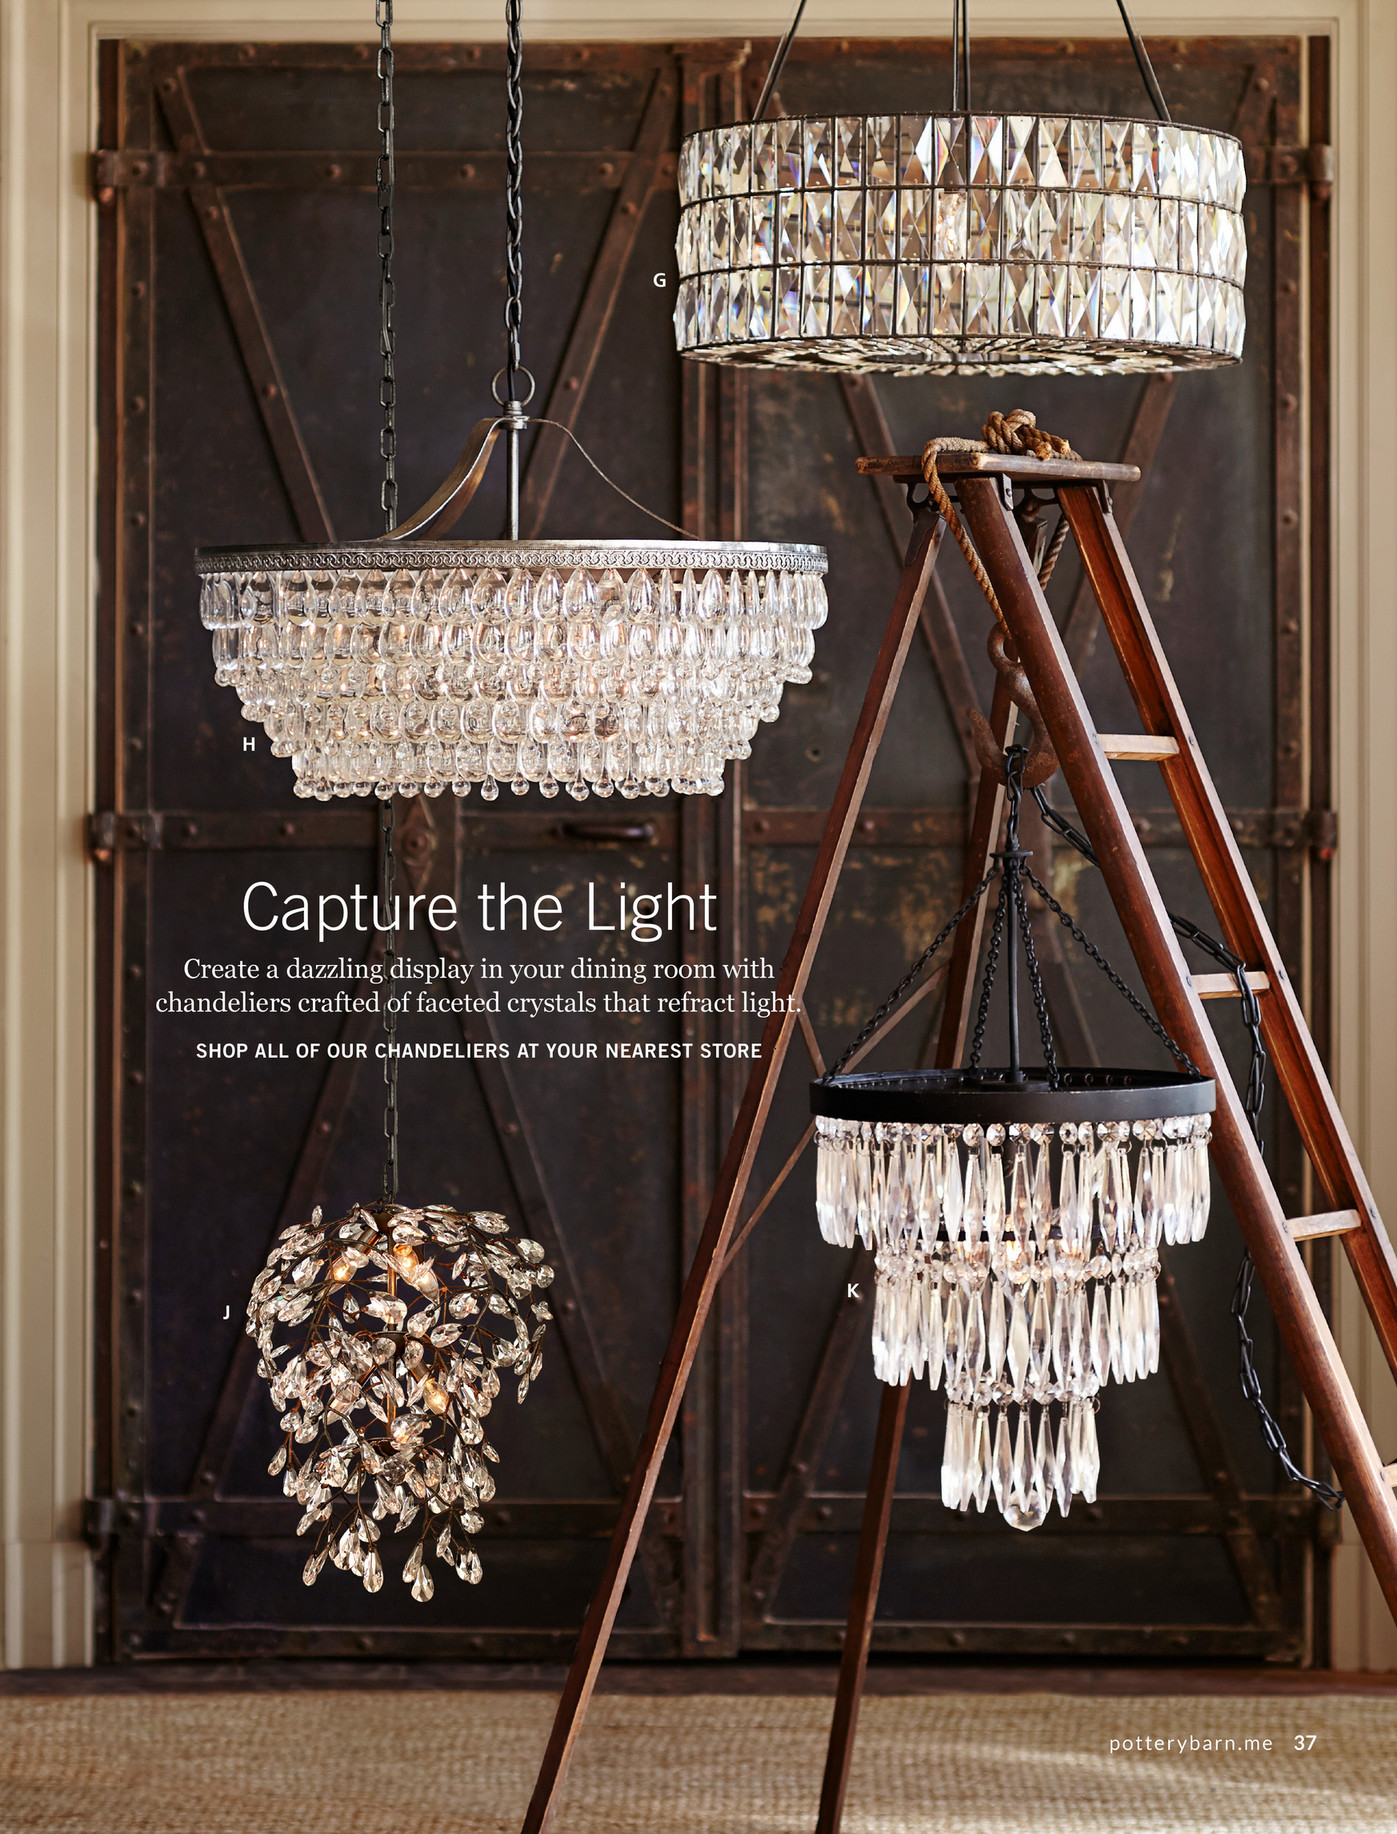 Pottery barn celeste chandelier - 37 Pottery Barn